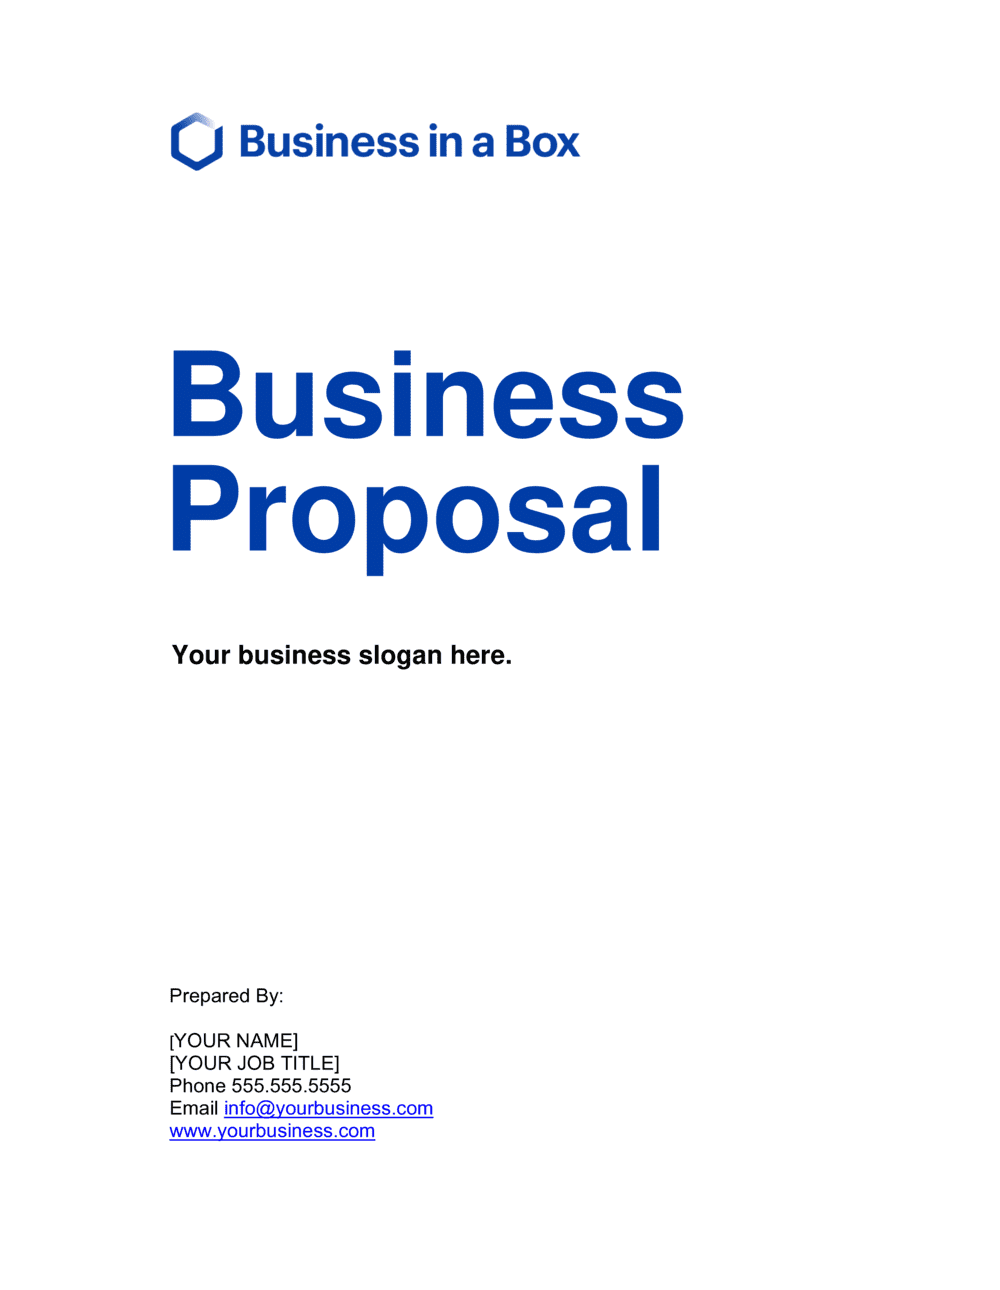 Business Proposal Template By Business In A Box